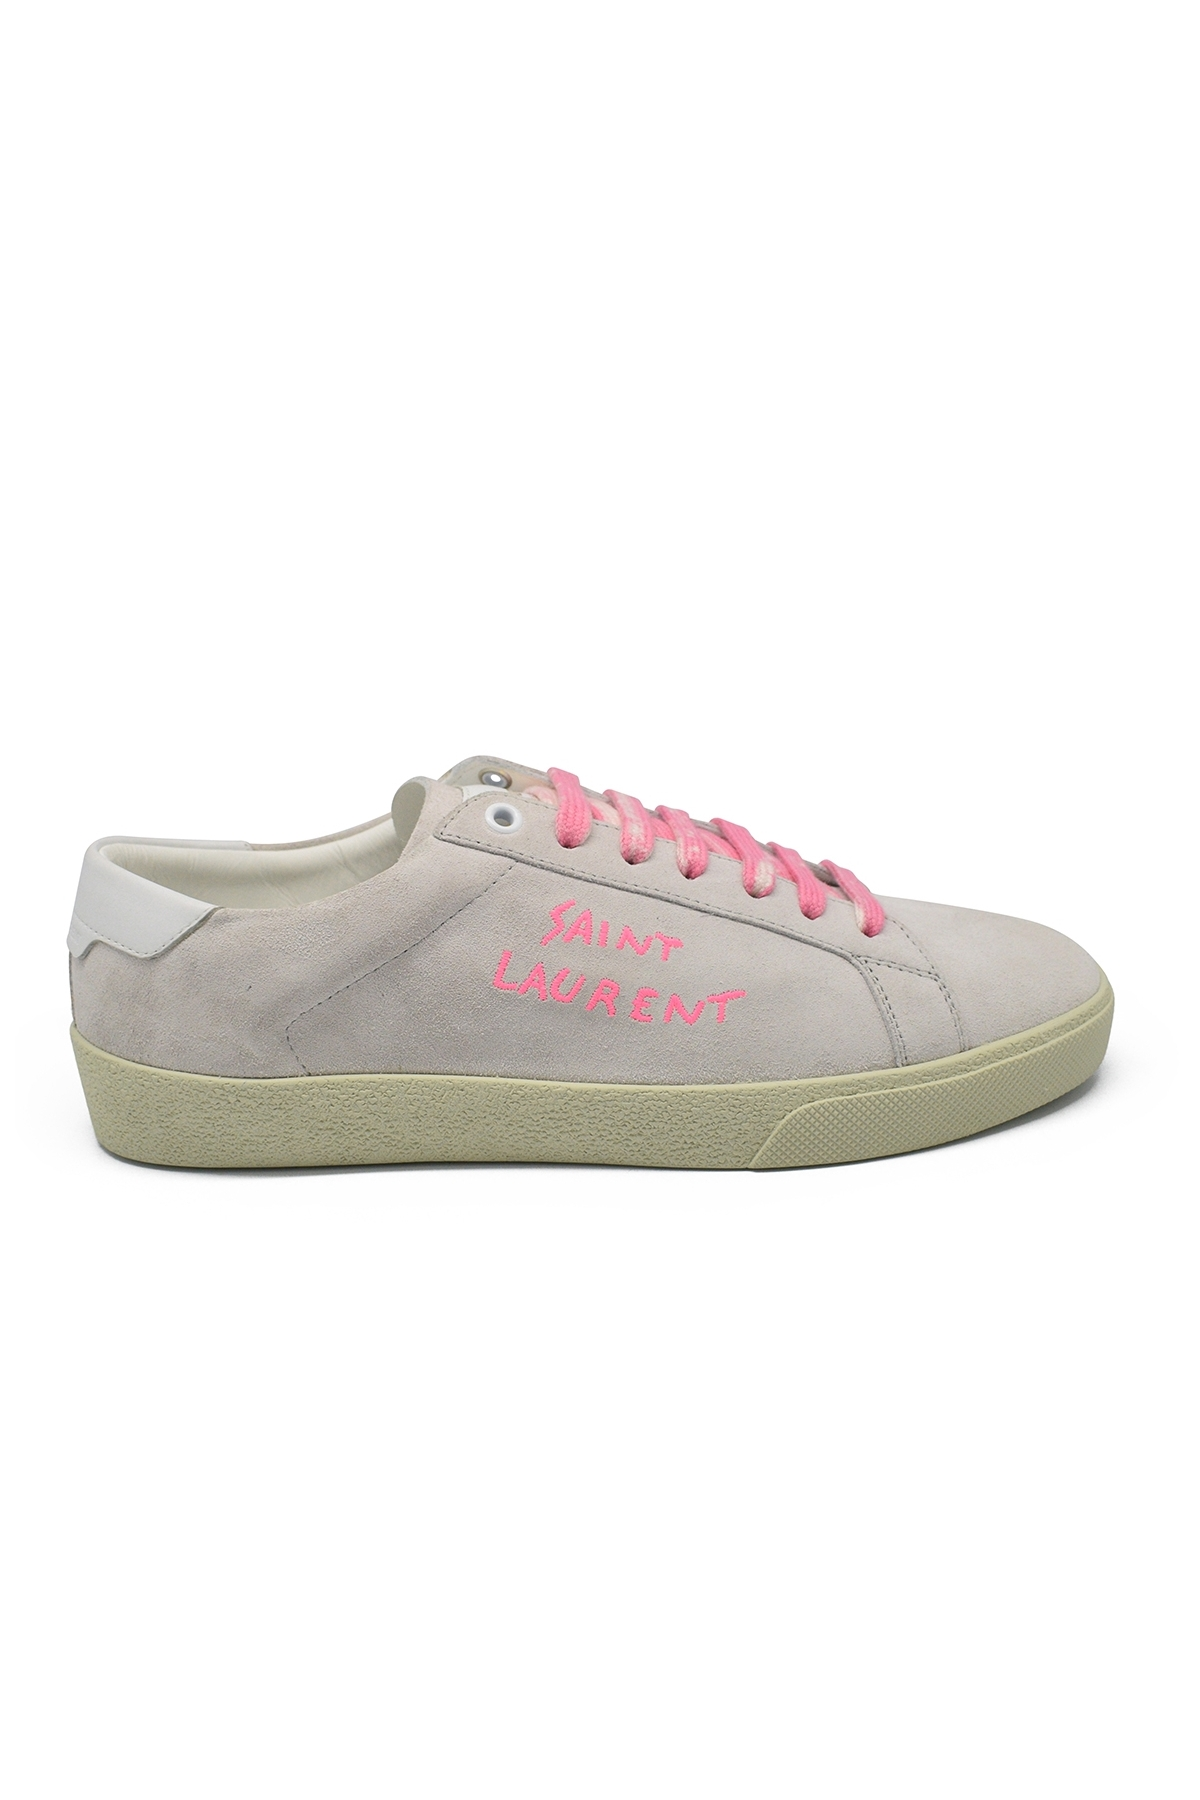 Saint Laurent Court Classic SL/06 sneakers in grey leather and suede with worn effect